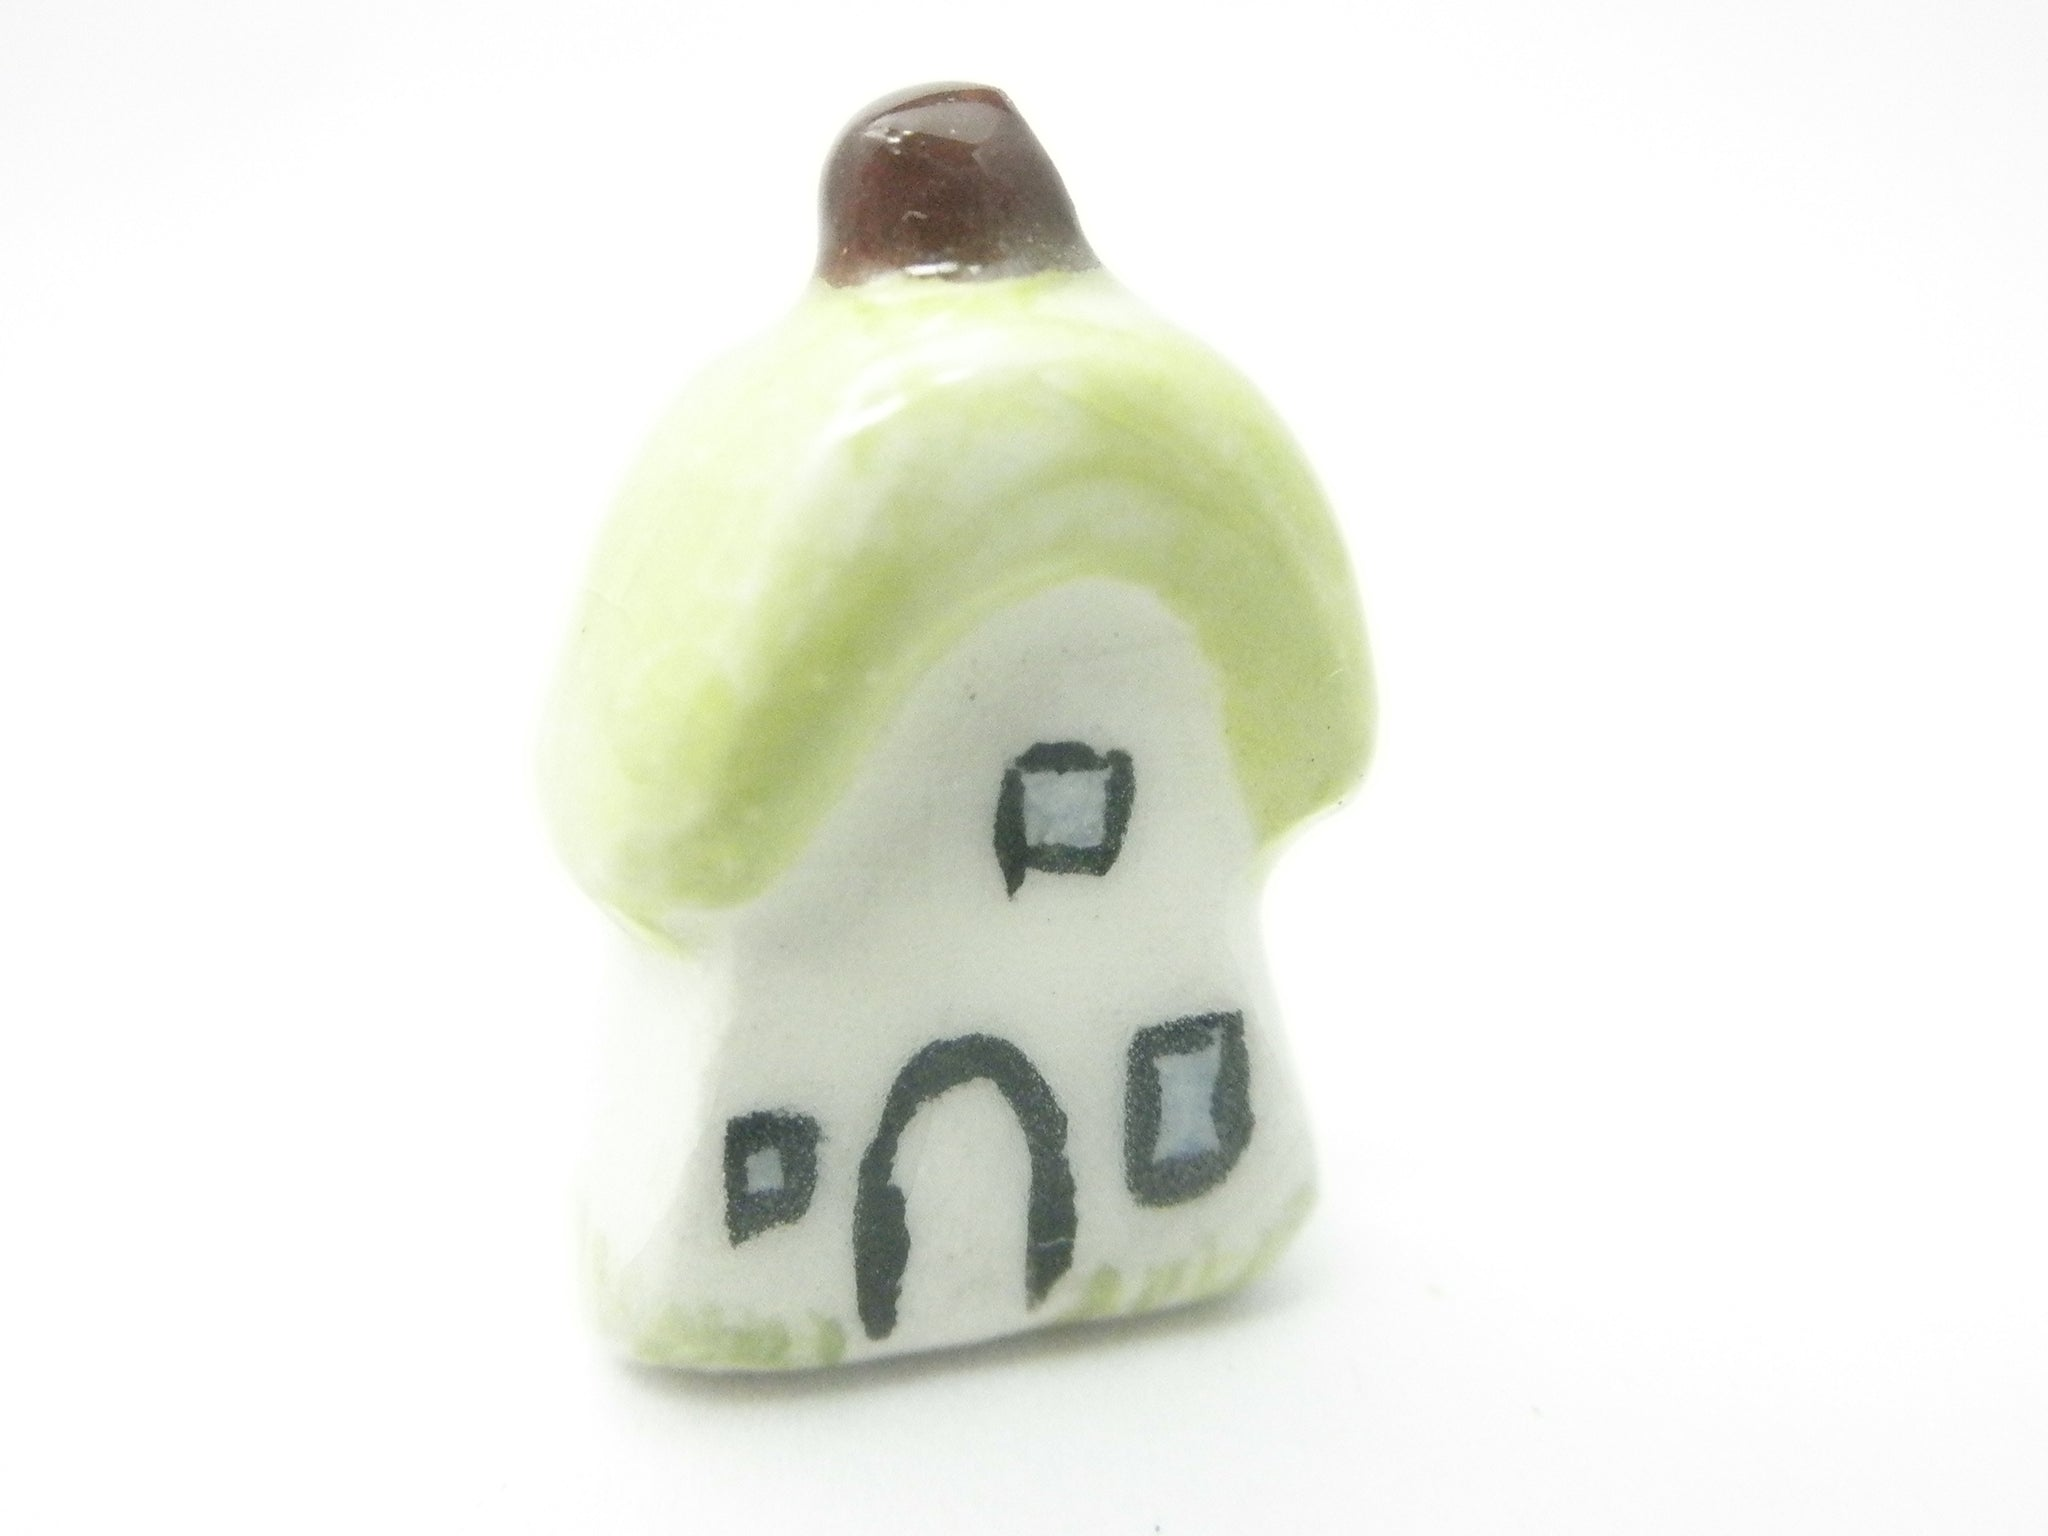 Fairy woodland cottage with thatched roof - 1/12th ceramic